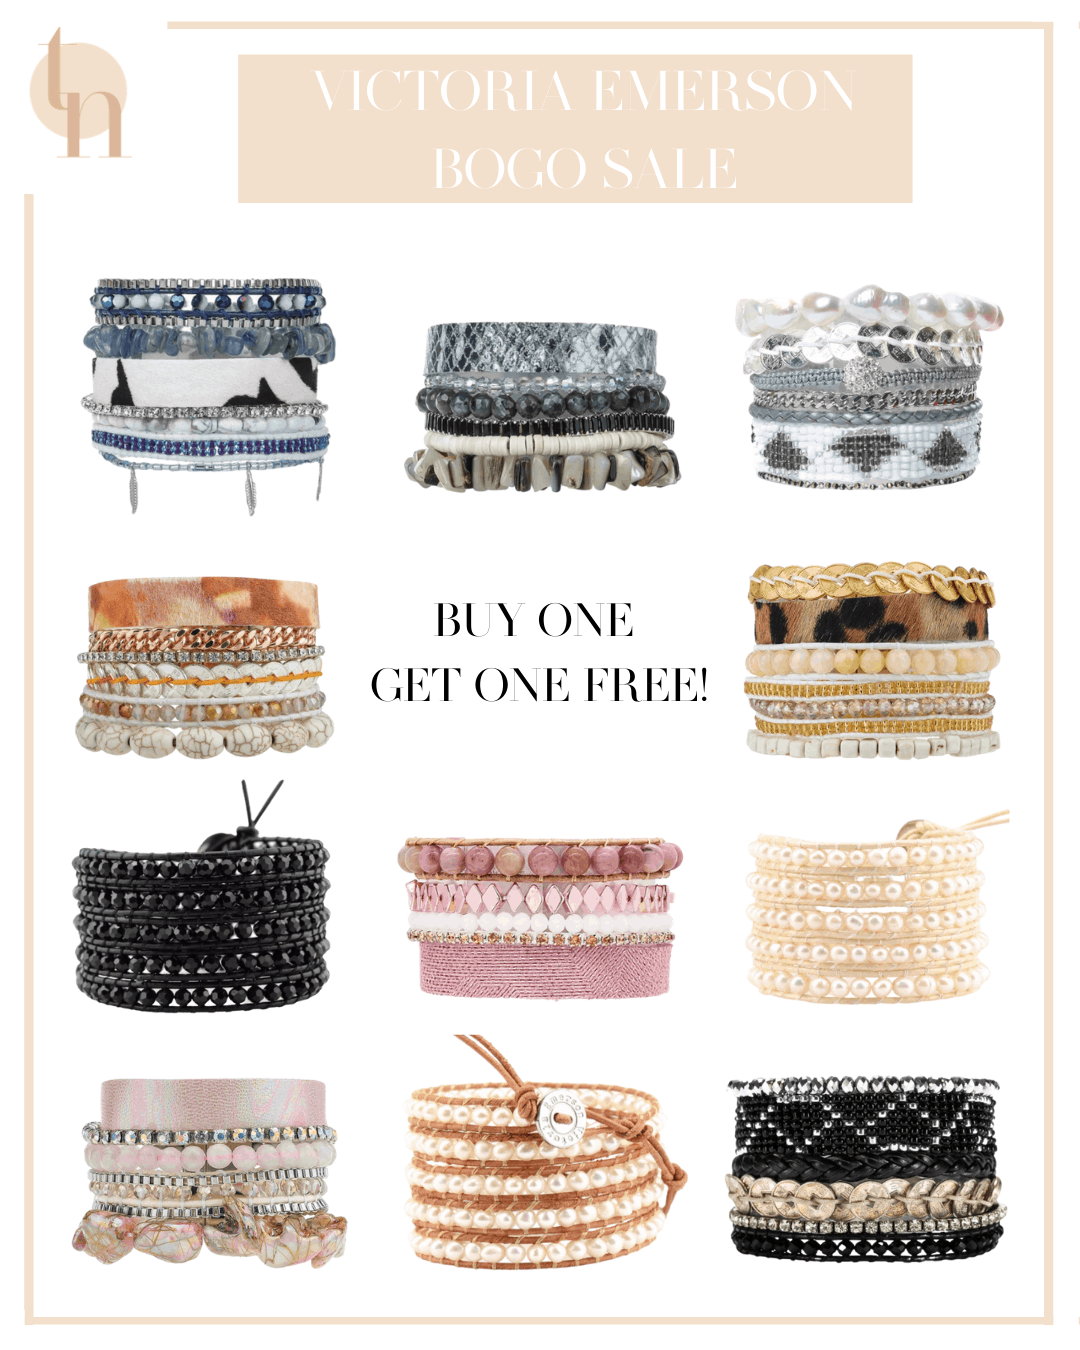 Labor Day Sales by popular Dallas life and style blog, Glamorous Versatility: collage image of Victoria Emerson bracelets and wraps.